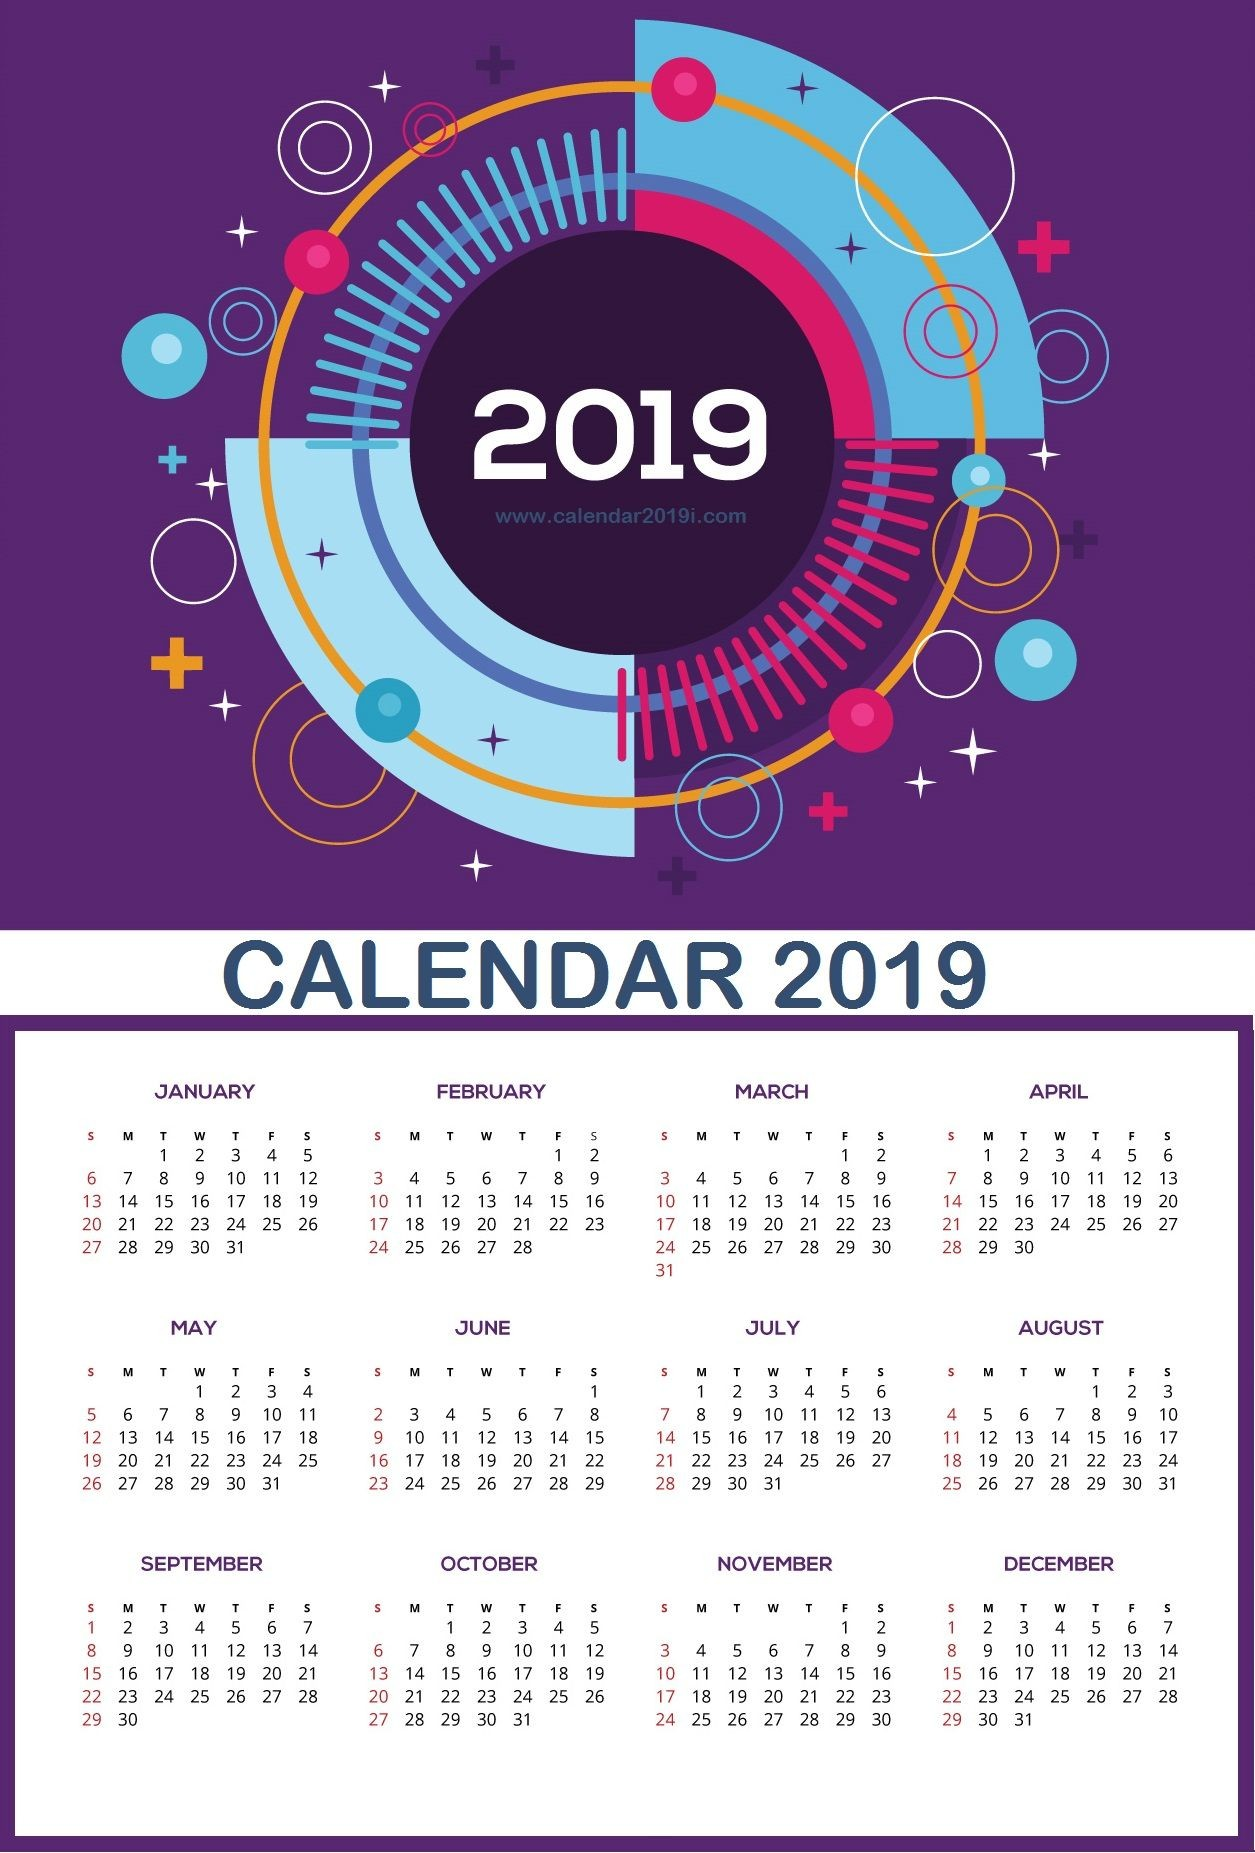 March 2019 Calendar Uk Printable Más Populares Wall Calendar 2019 Planner Pinterest Of March 2019 Calendar Uk Printable Más Recientemente Liberado June 2019 Calendar Word Lara Expolicenciaslatam